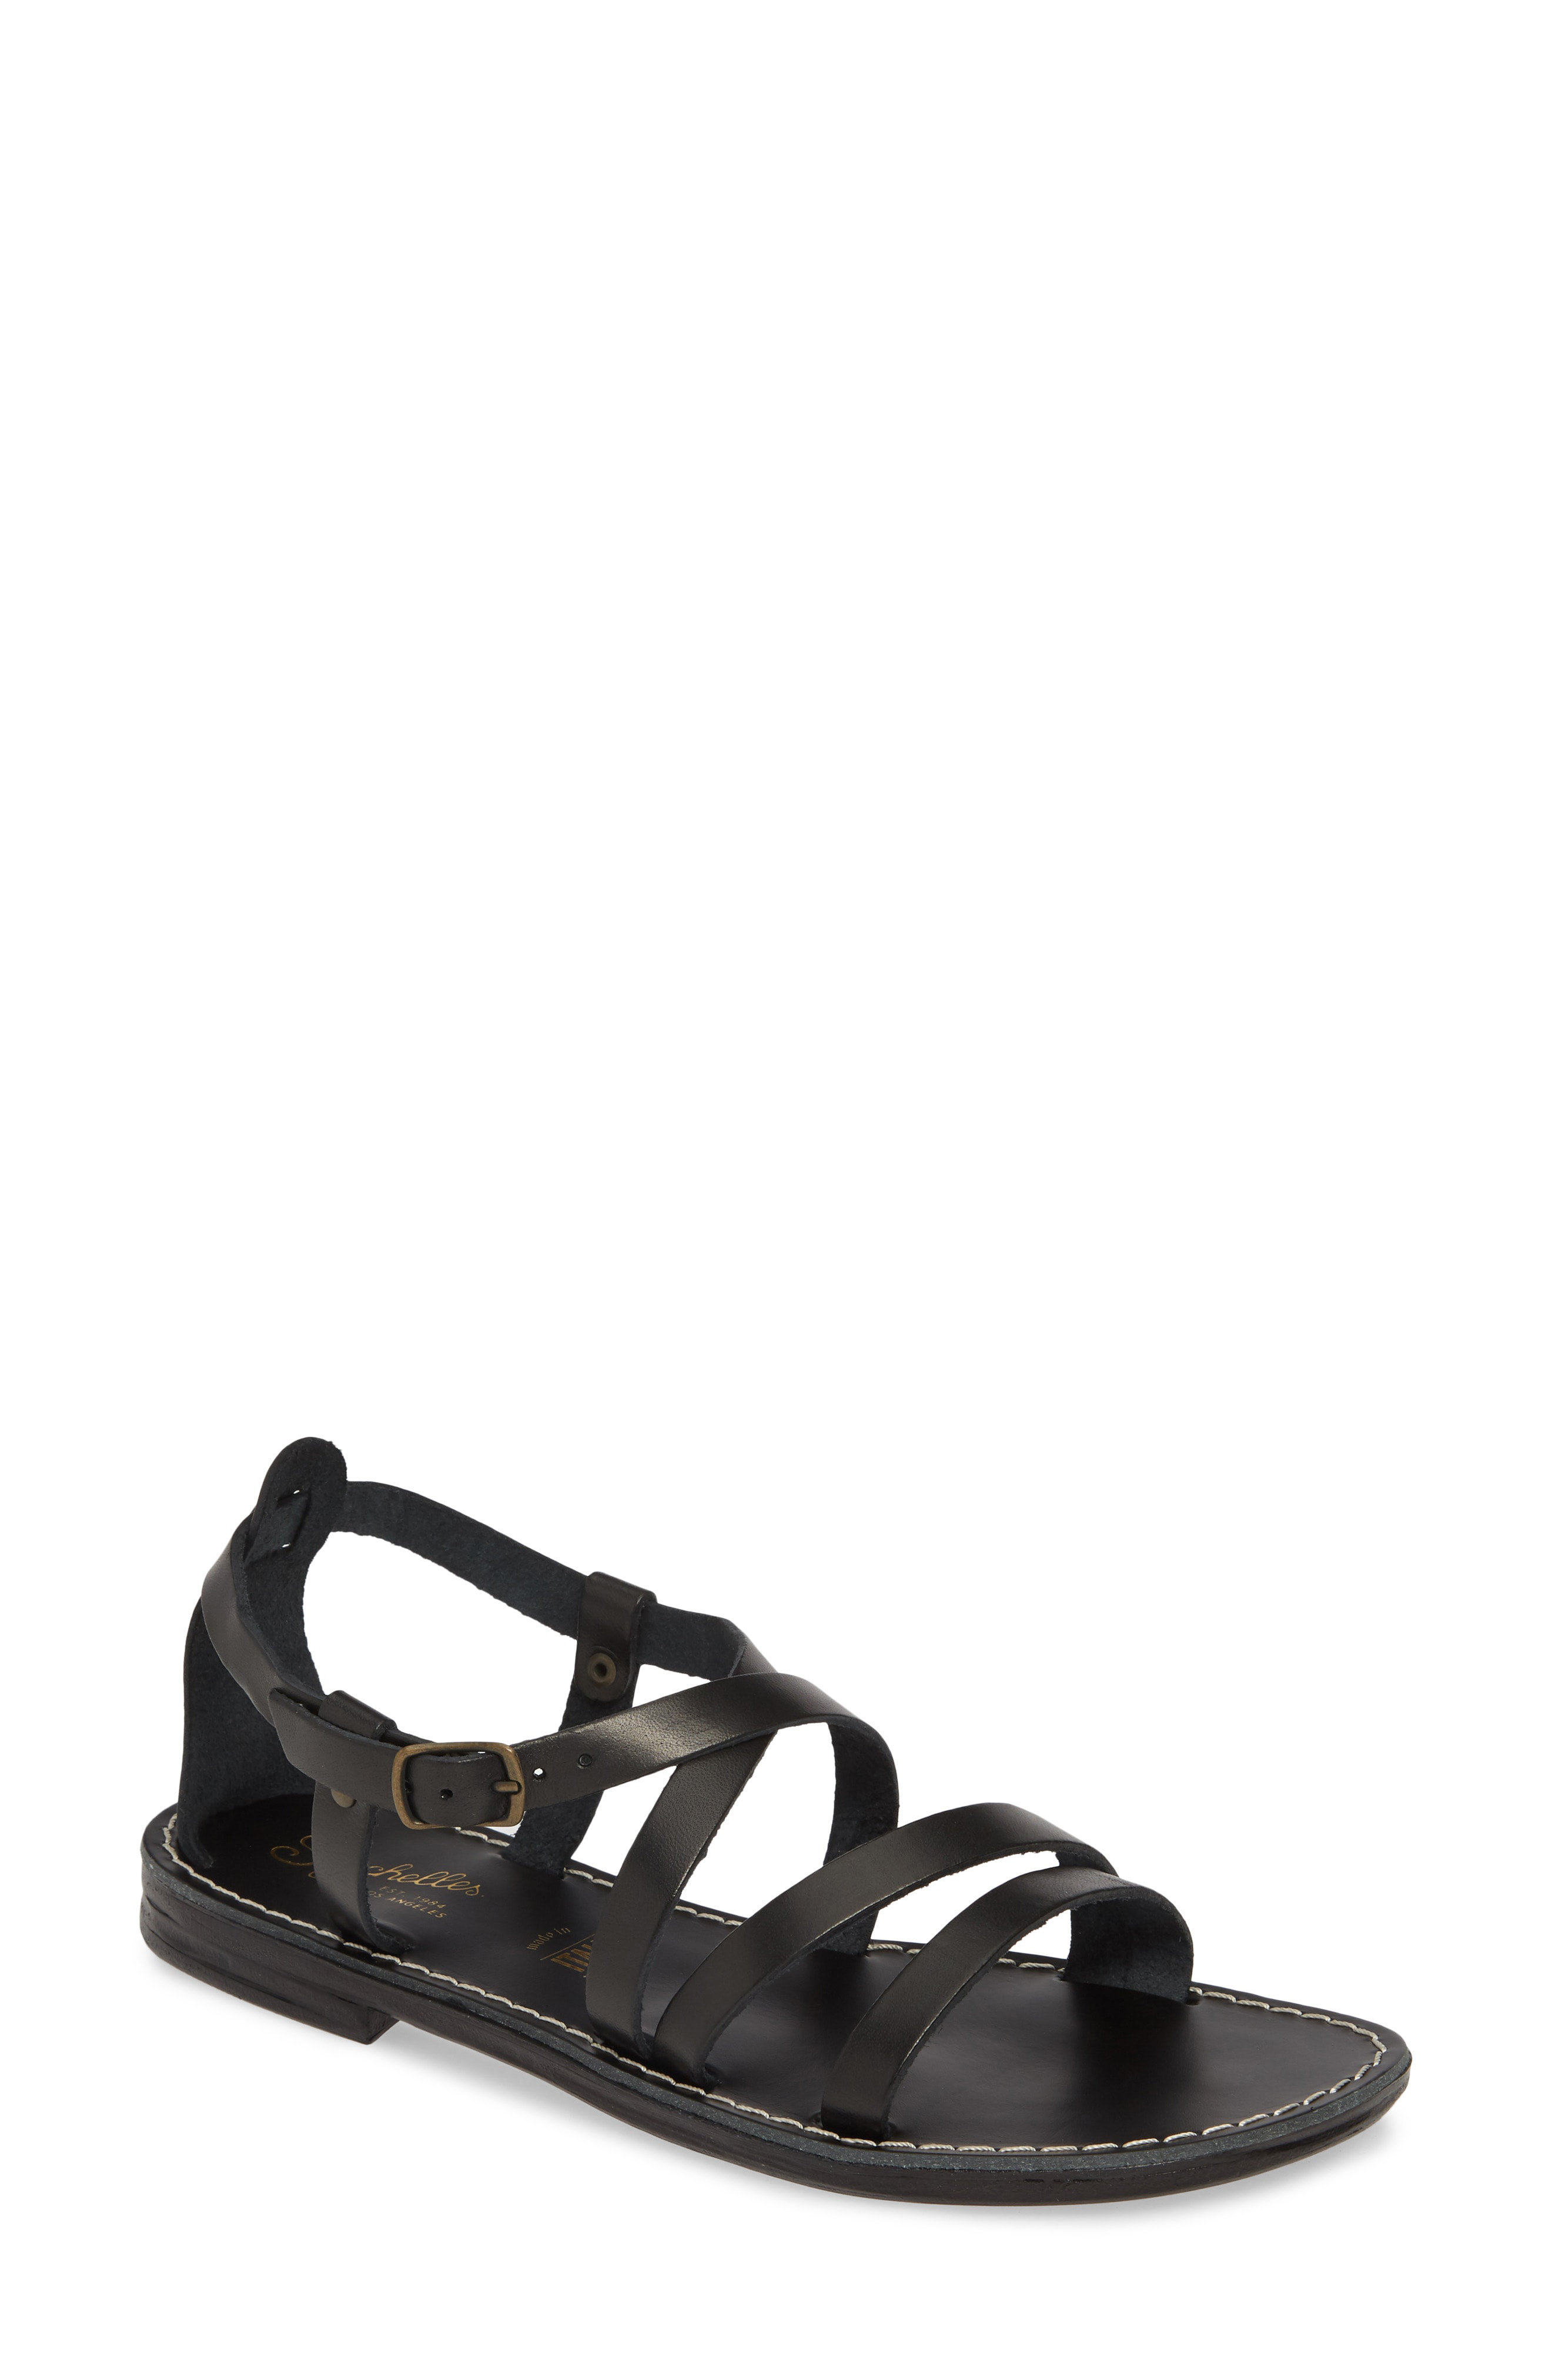 870595fc93eb5 Seychelles Upcycle Strappy Sandal In Black Leather